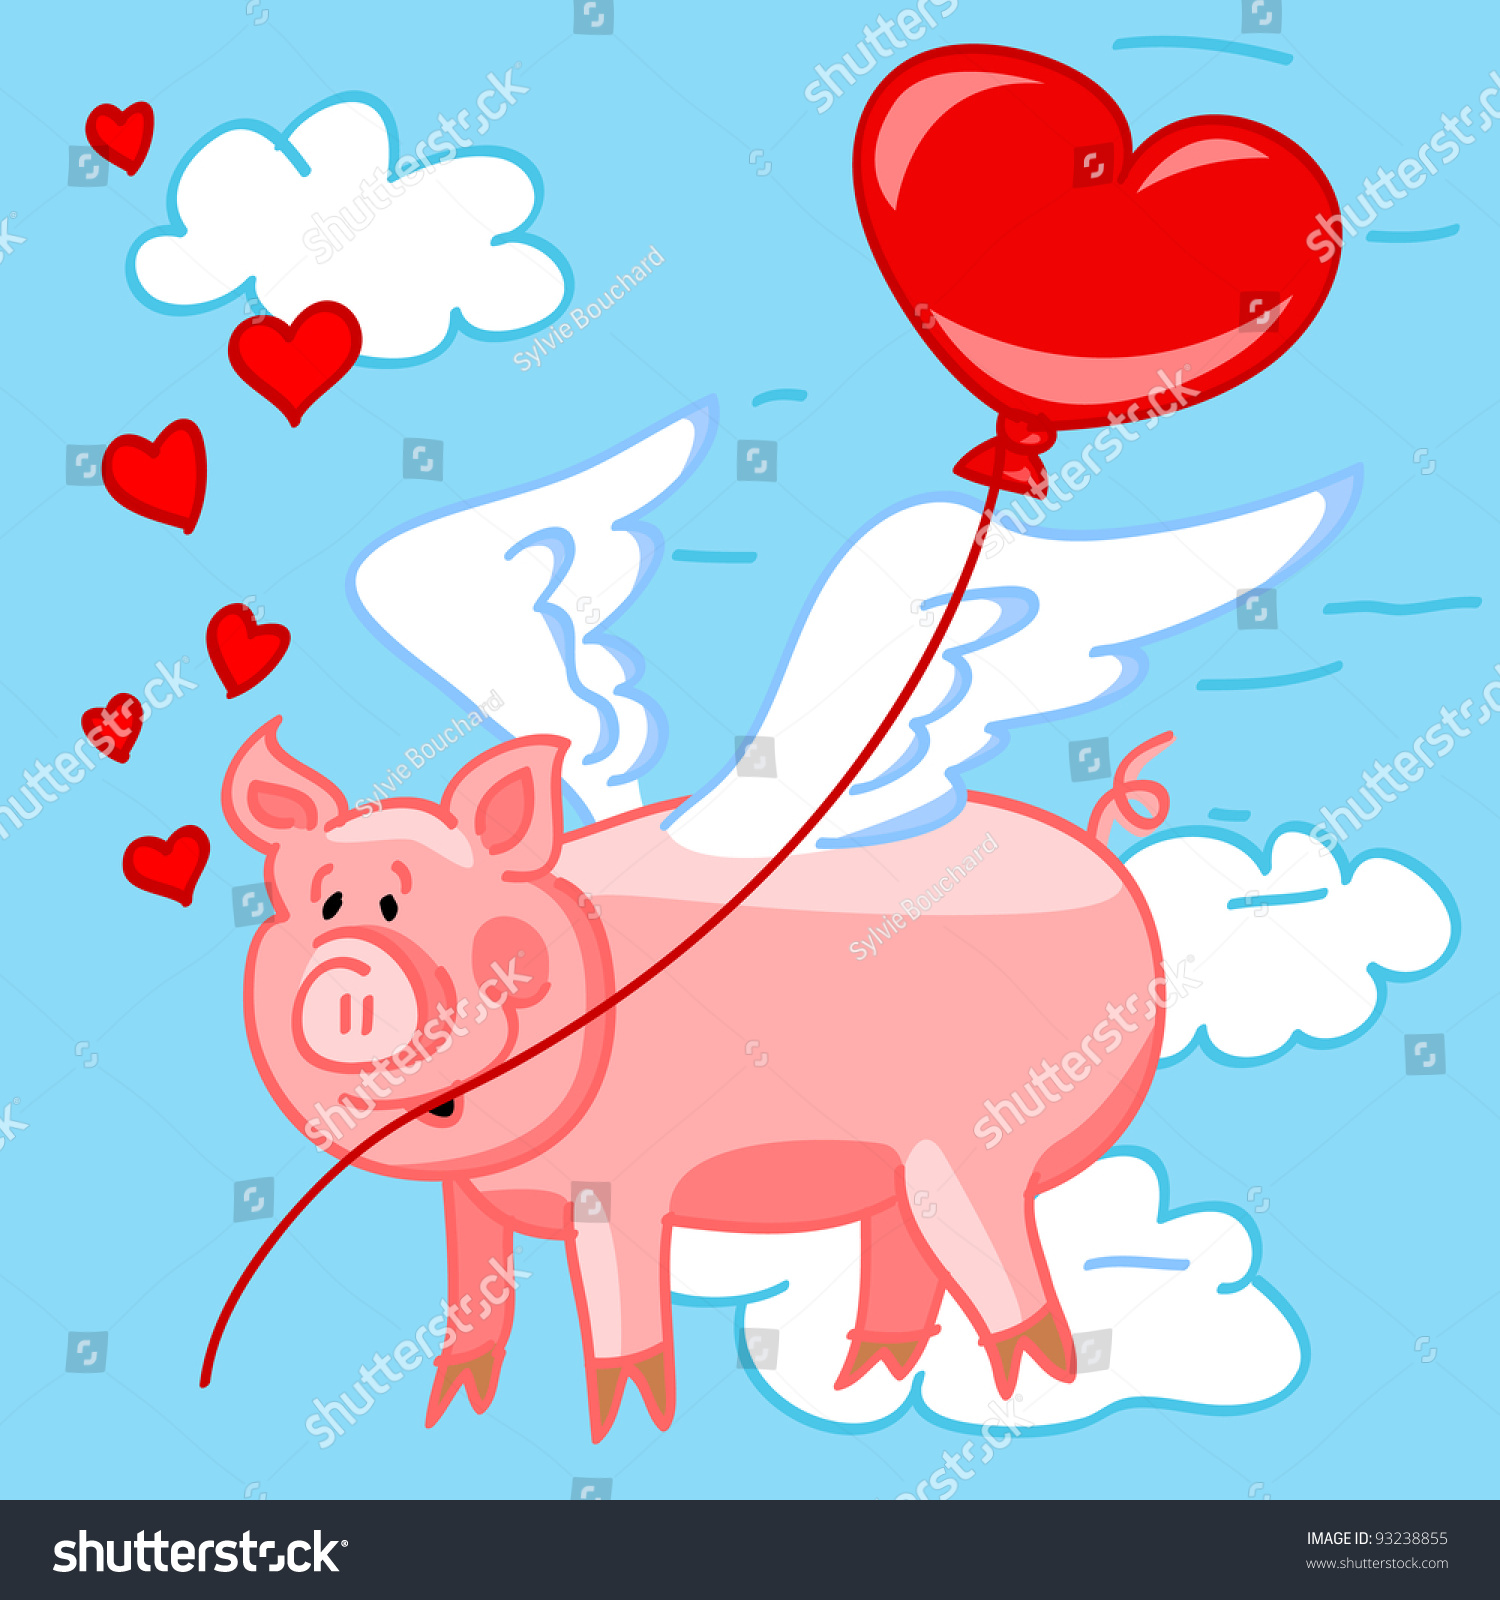 cute and fun cartoon of a flying pig in love delivering a